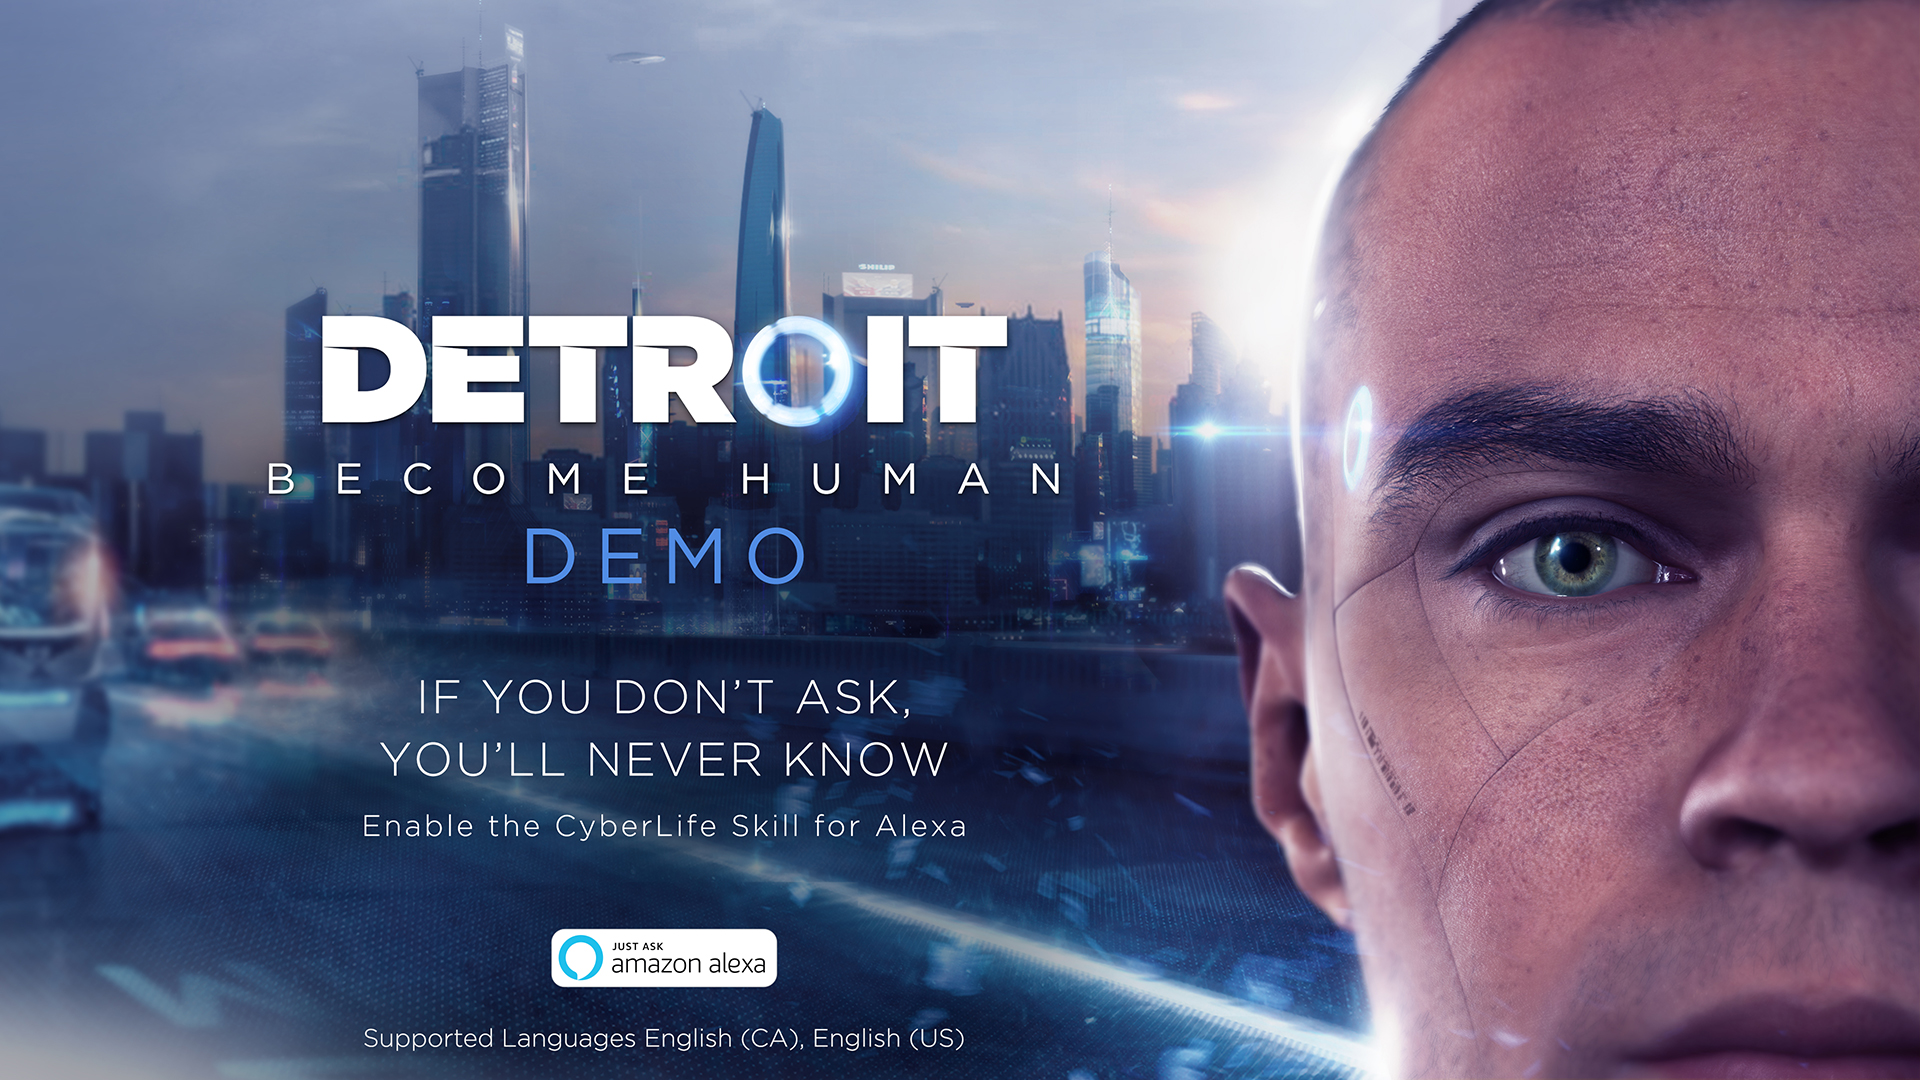 detroit become human demo cyberlife skill for amazon. Black Bedroom Furniture Sets. Home Design Ideas